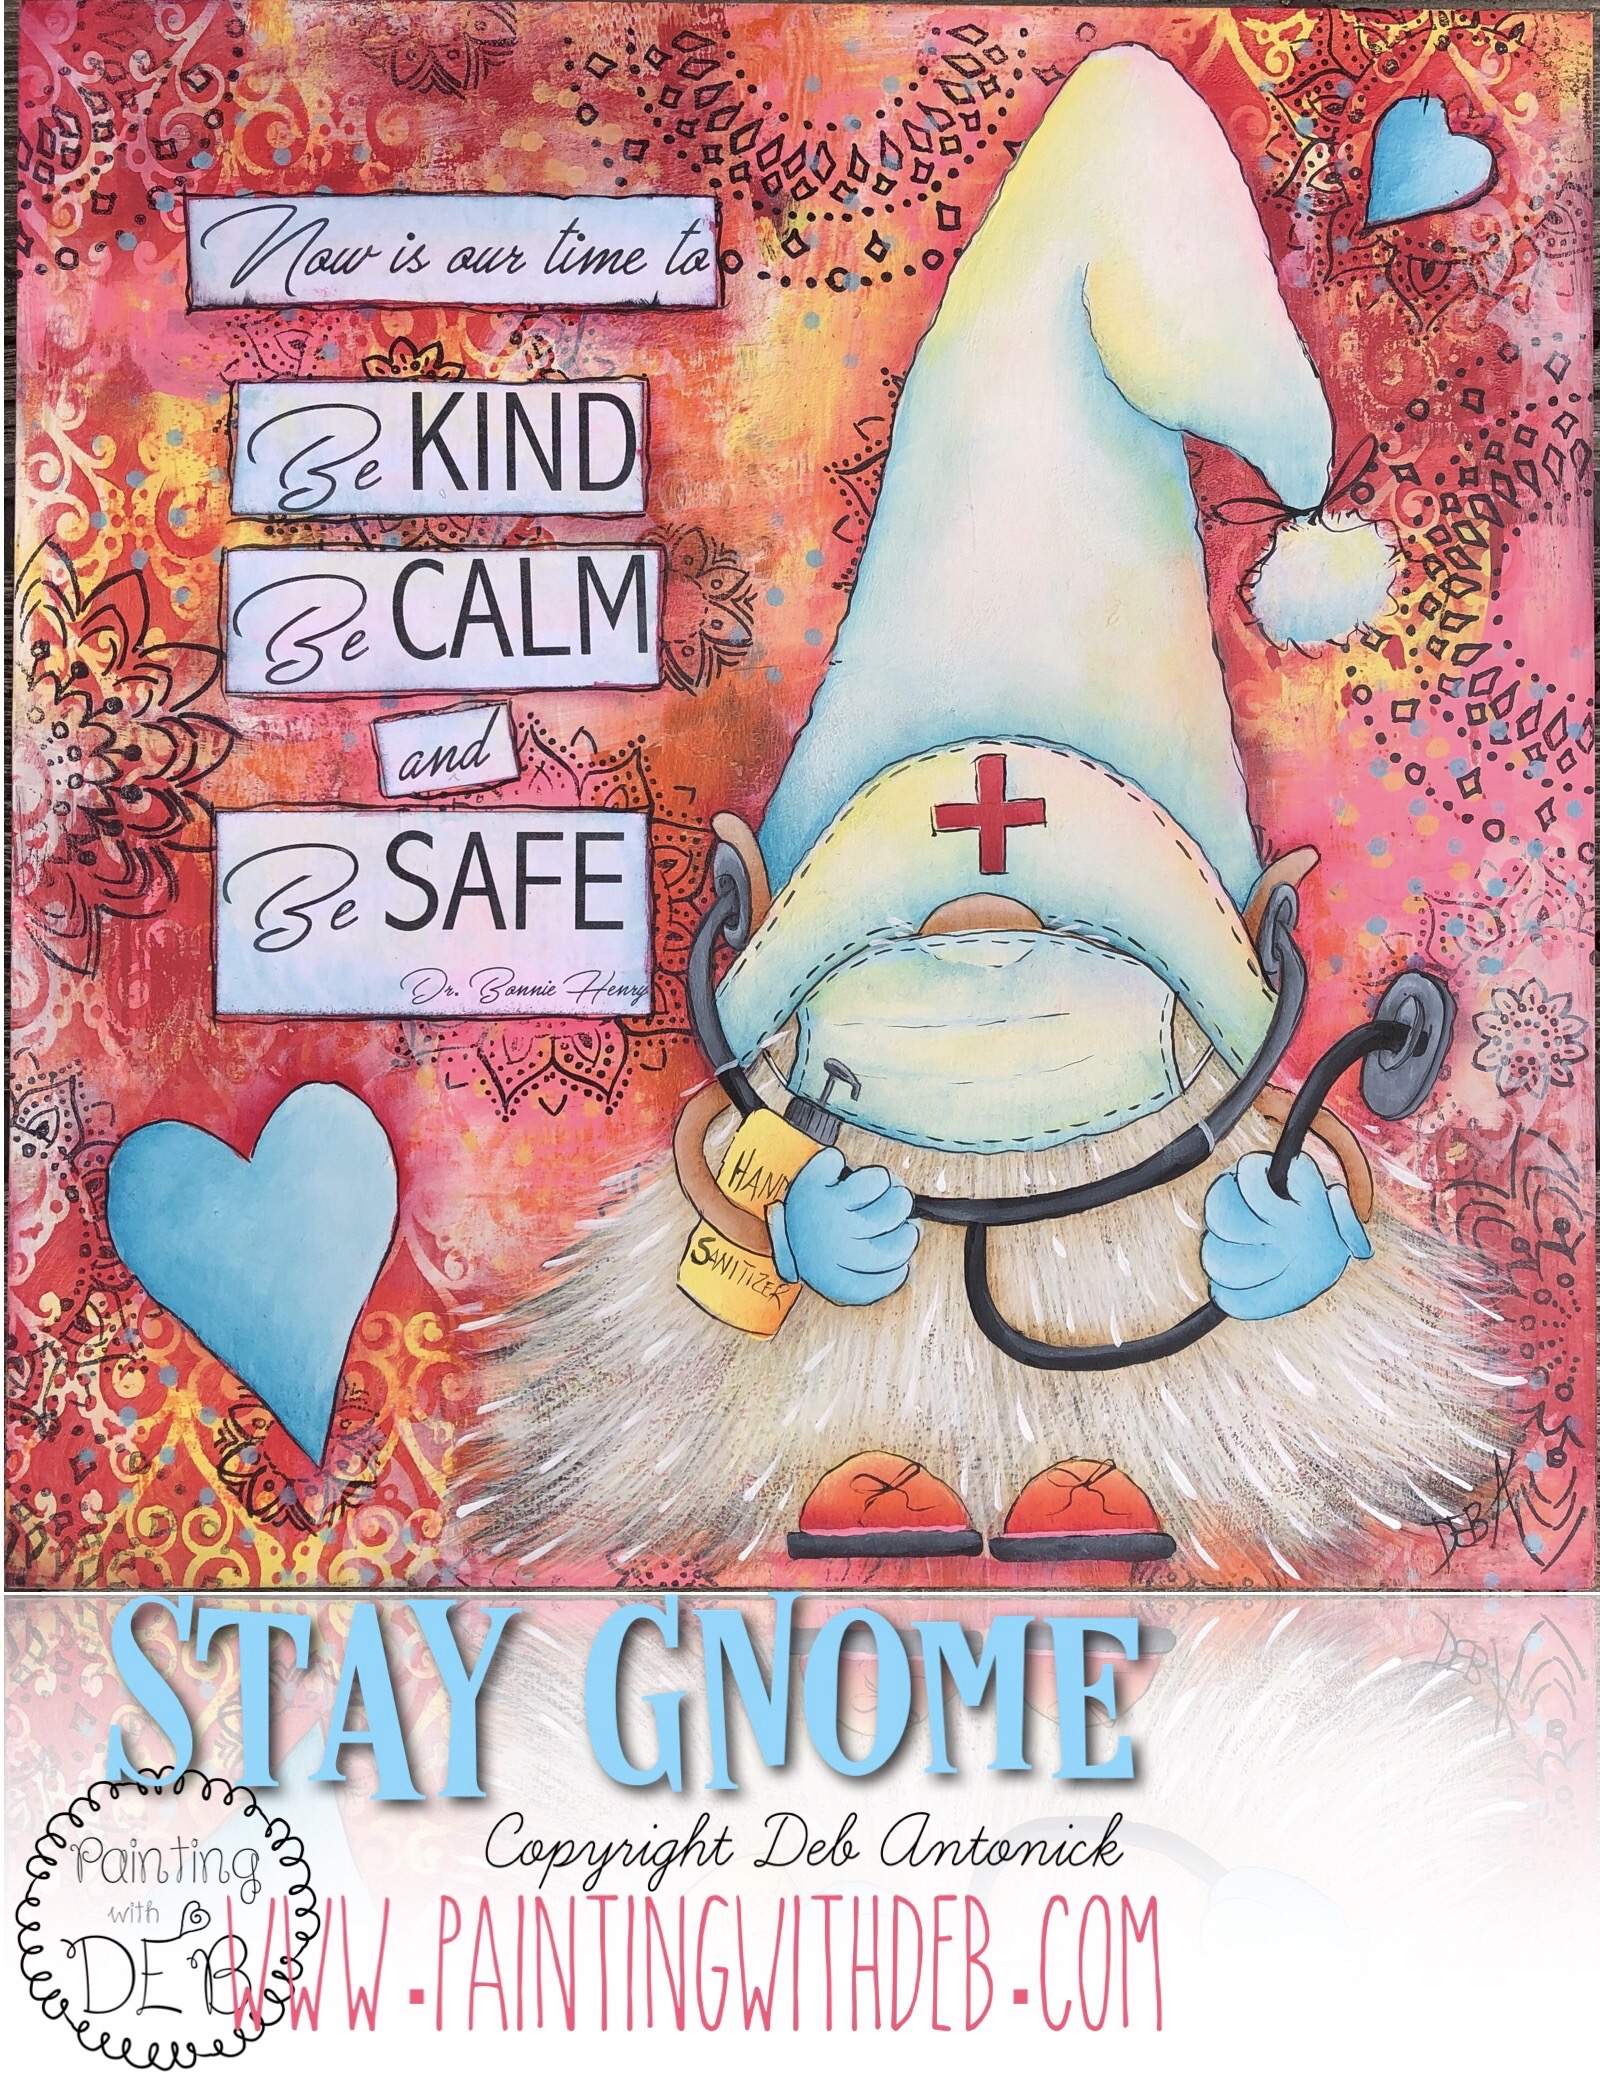 Stay Gnome - E-Packet - Deb Antonick